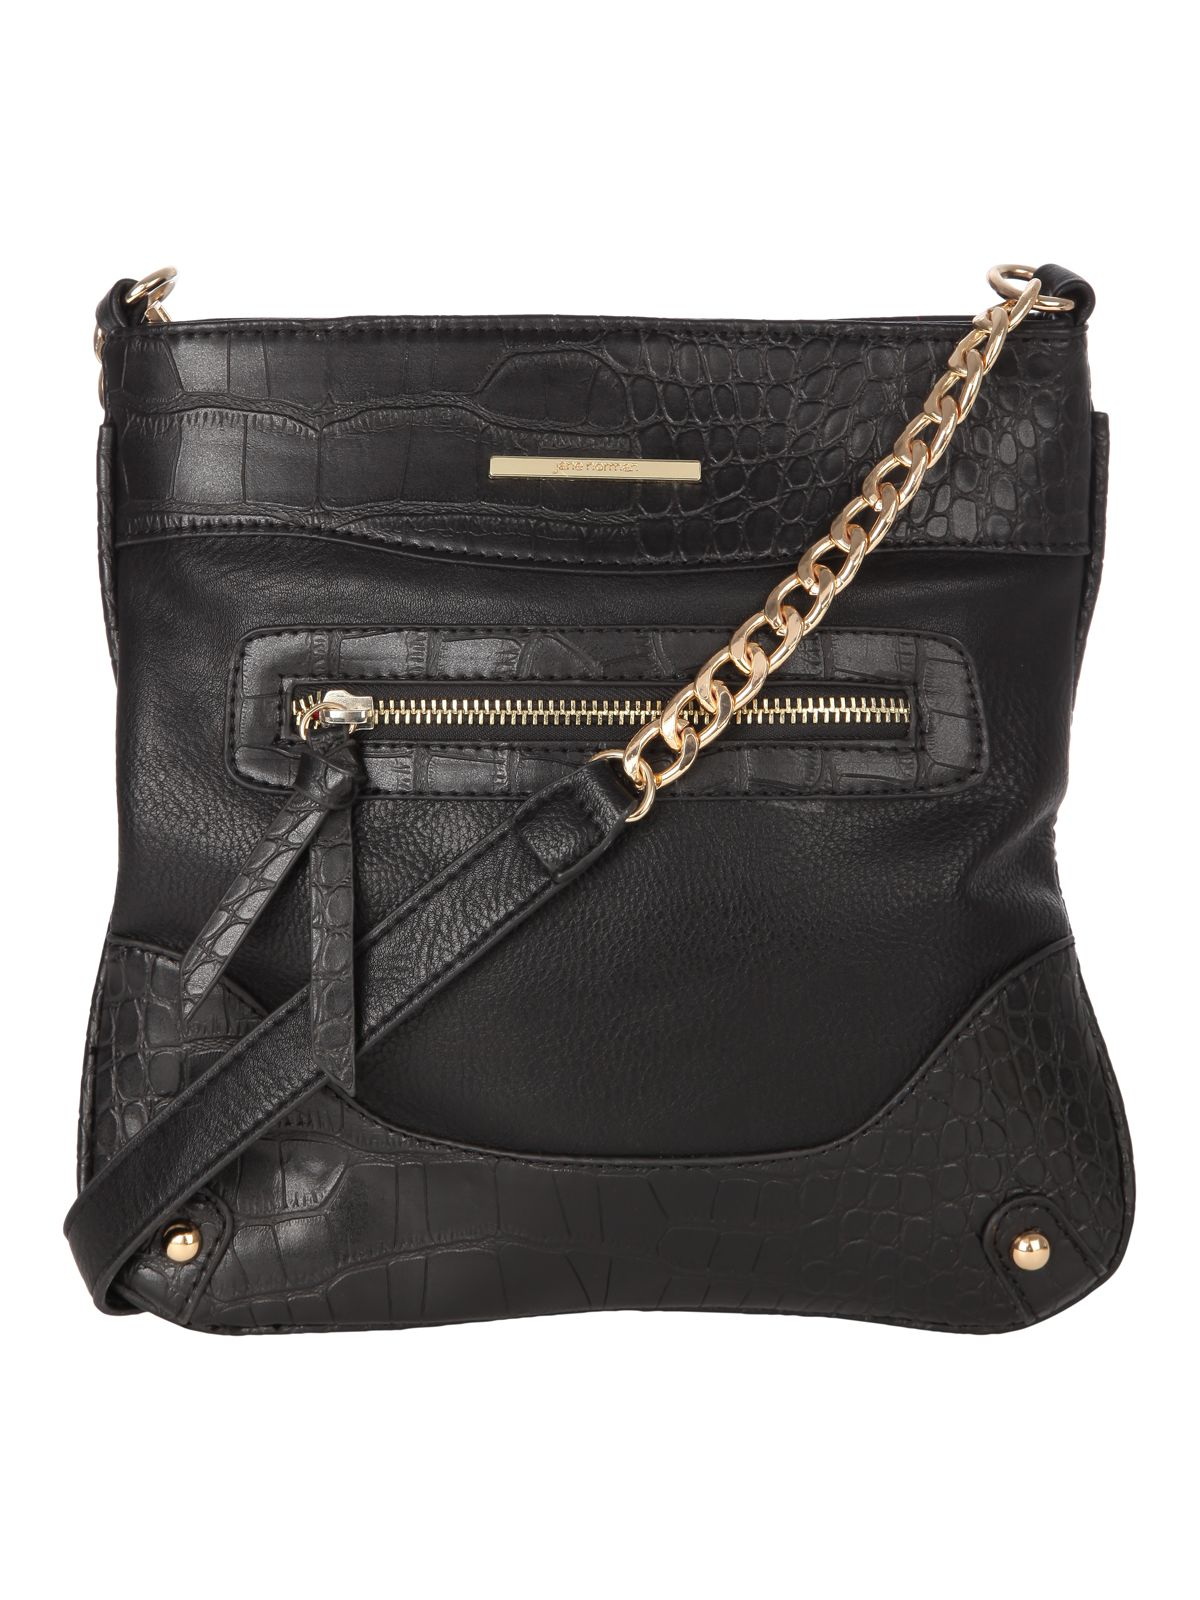 Across The Body Faux Croc Bag